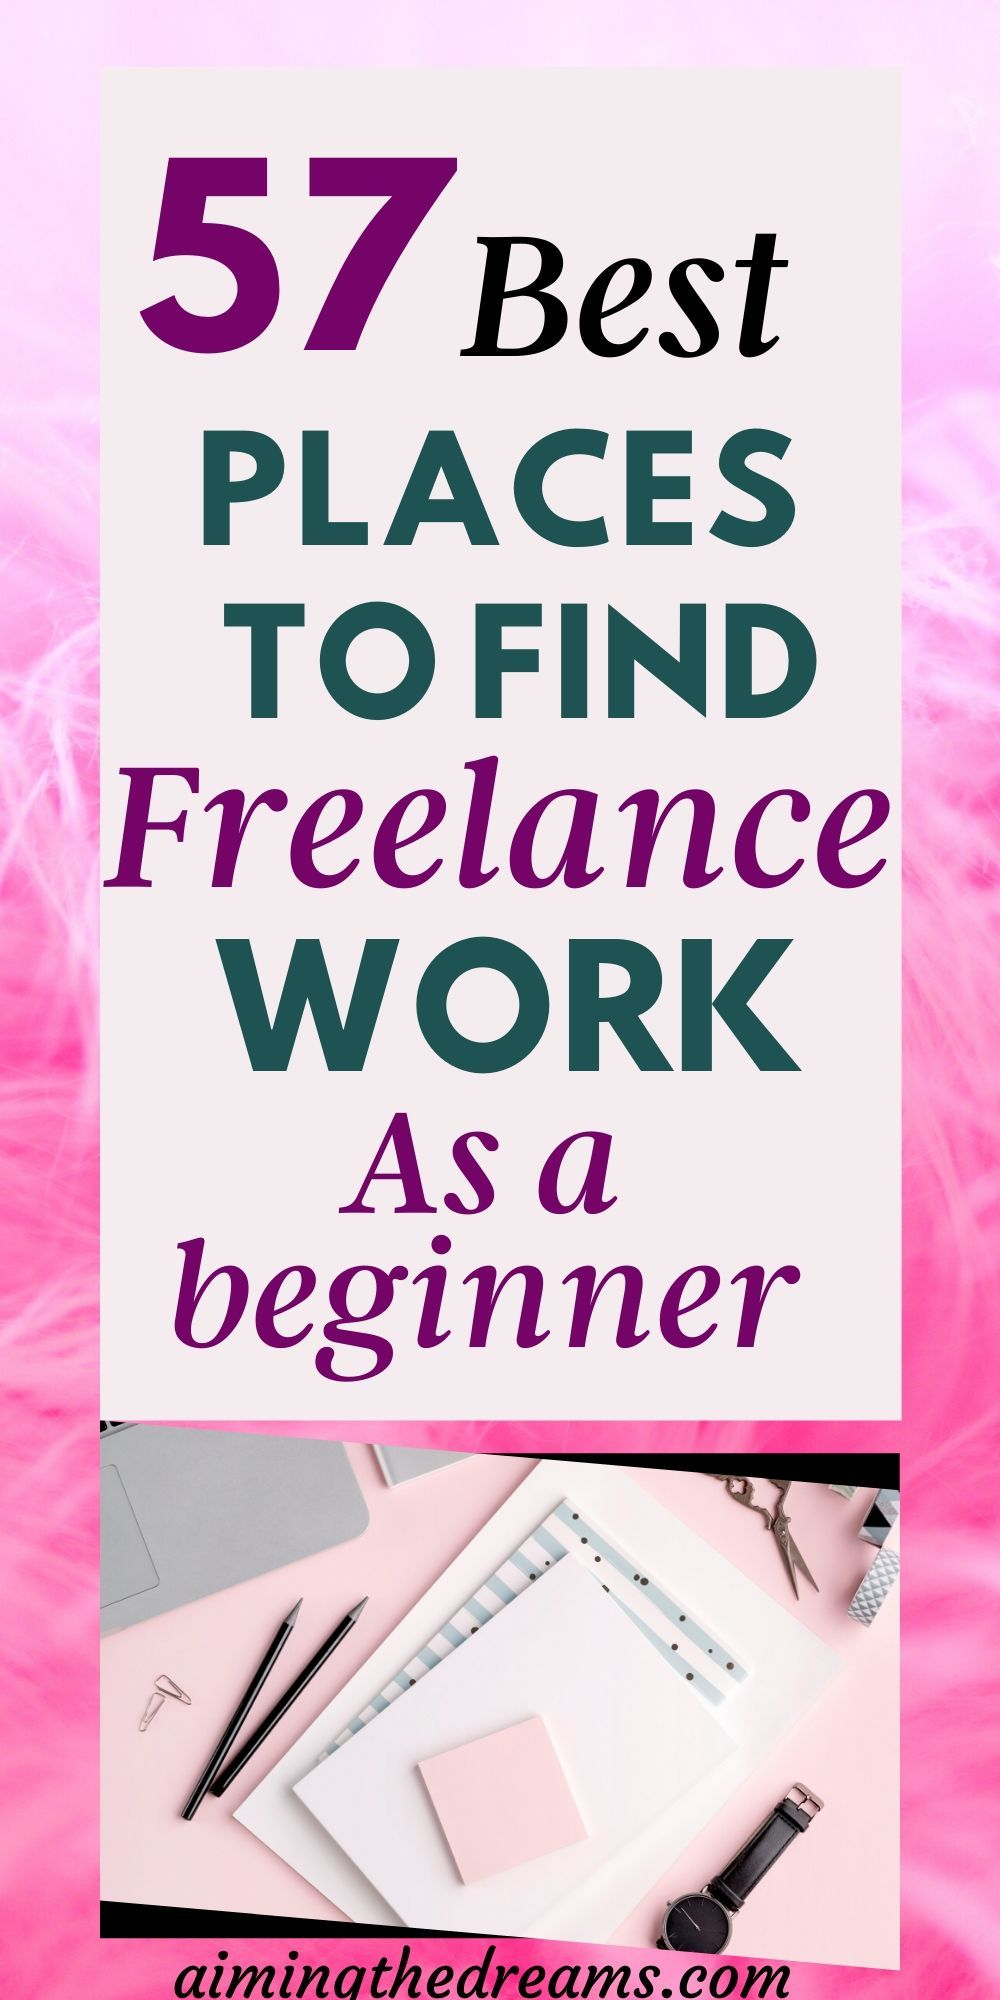 Freelance Work To Start As A Beginner In 2020 Freelance Work Finding Freelance Work Make Money Writing